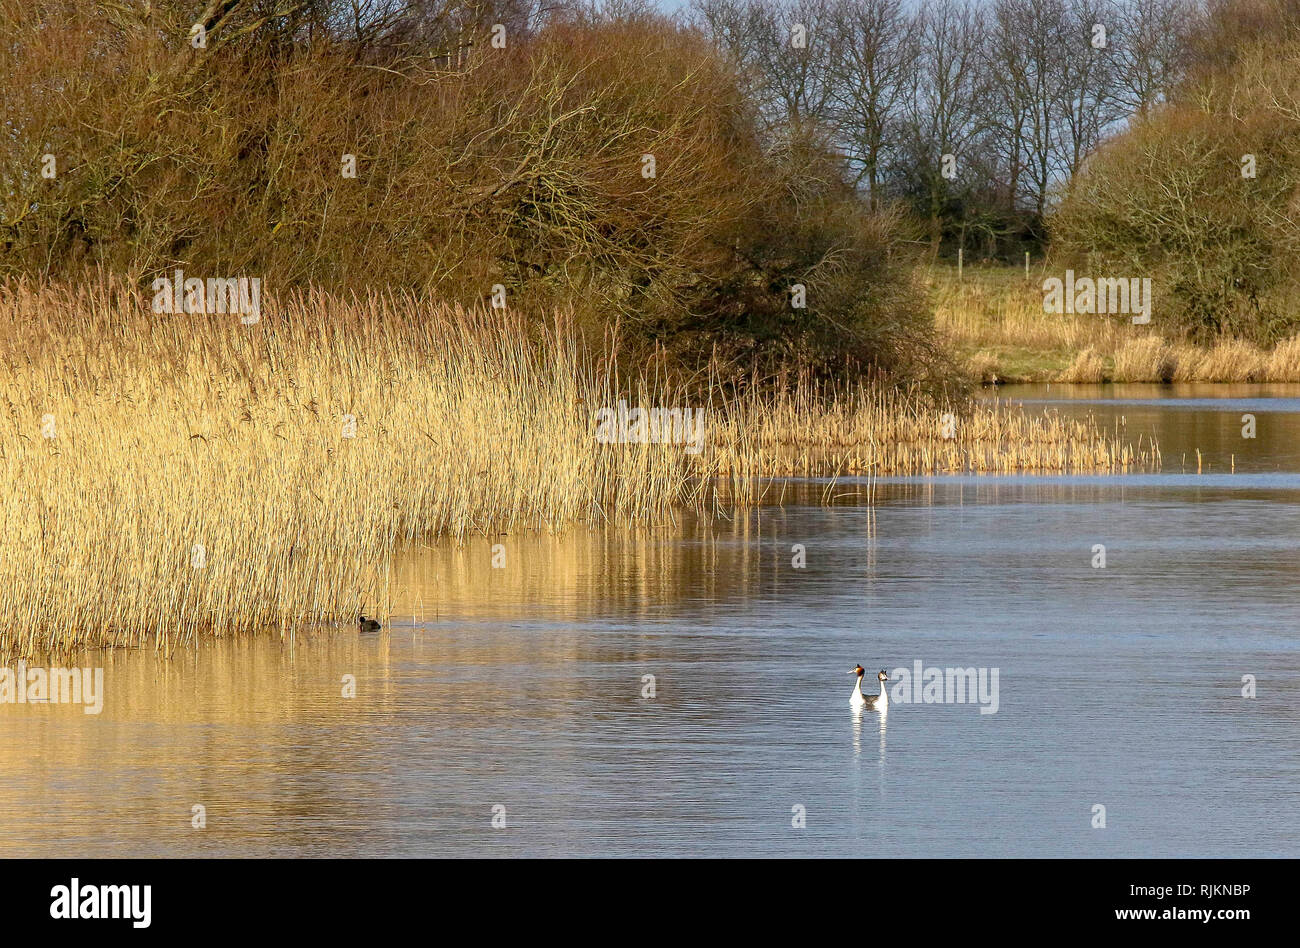 Oxford Island, Lough Neagh, Northern Ireland. 07 February 2019. UK weather - a bright sunny day after persisitent heavy overnight rain. Winds to increase with more heavy rain expected late Friday. Great crested grebes together in the sunshine. Credit: David Hunter/Alamy Live News. - Stock Image